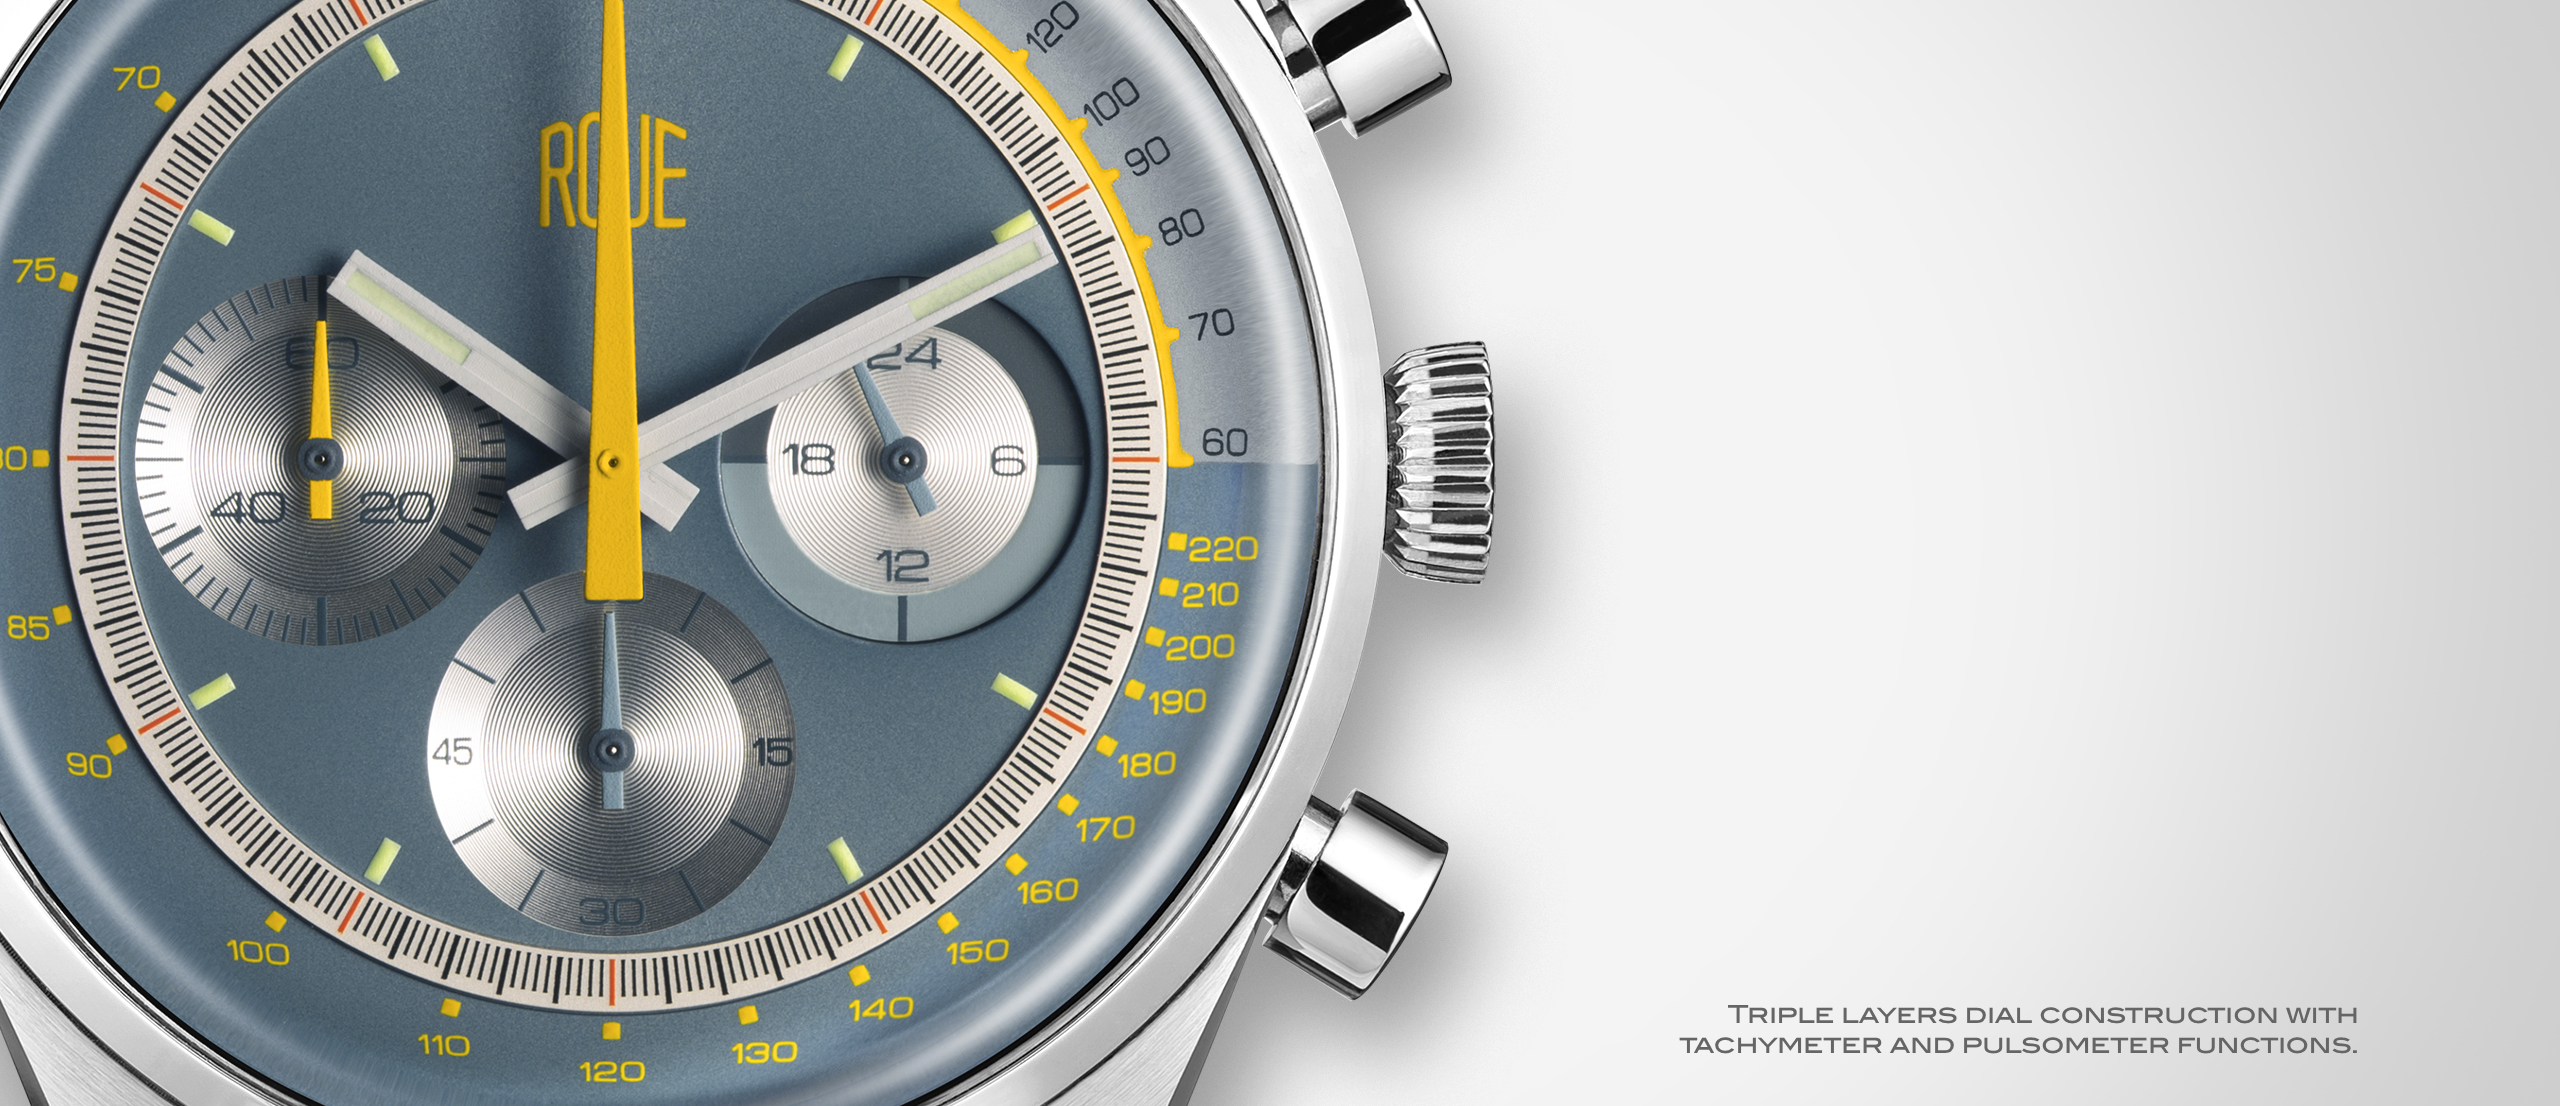 Roue Watch TPS Model - Triple layers dial construction with tachymeter and pulsometer functions